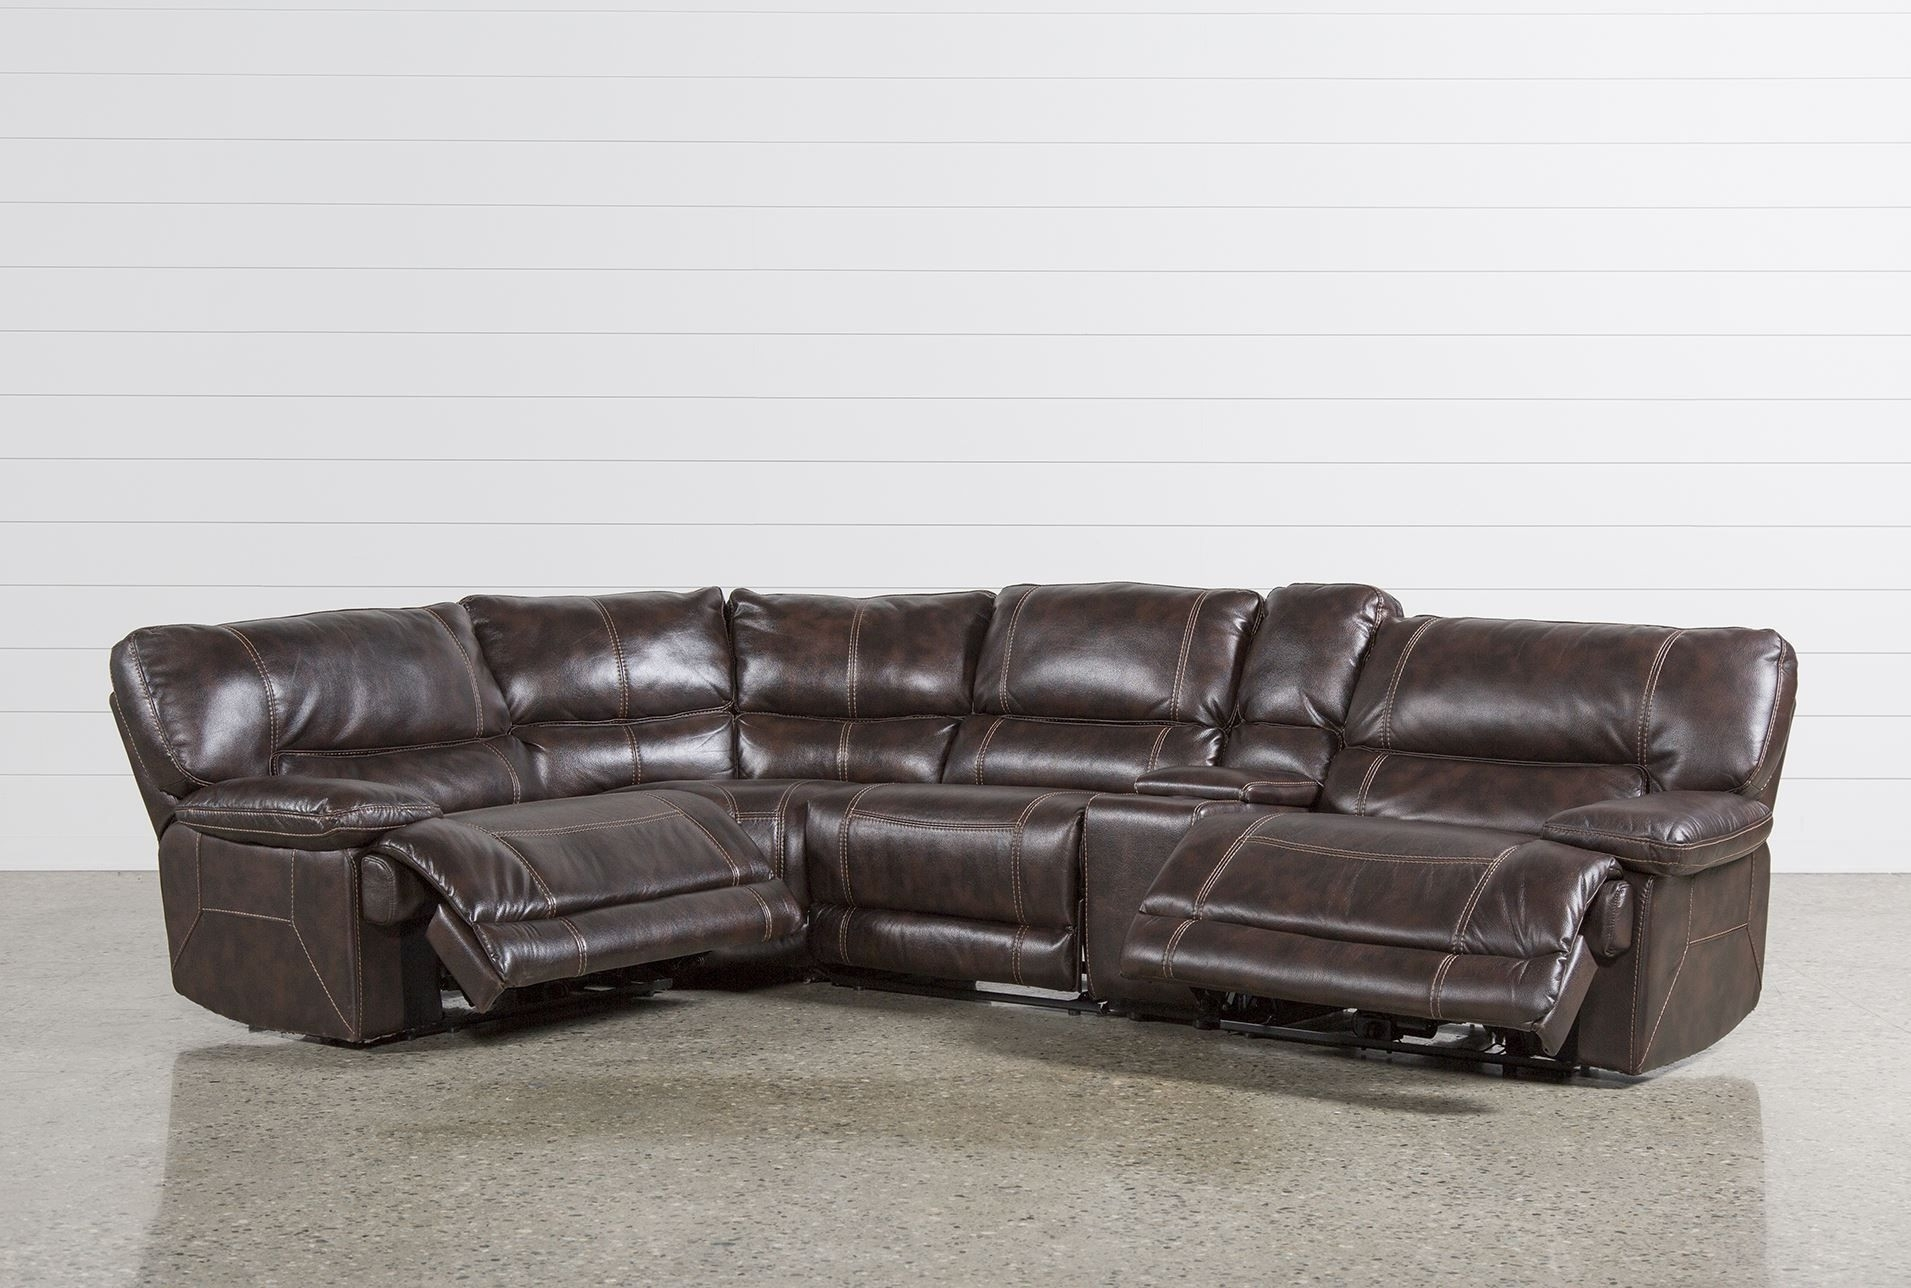 Living Spaces Sectional – Tidex Inside Sierra Down 3 Piece Sectionals With Laf Chaise (View 13 of 25)